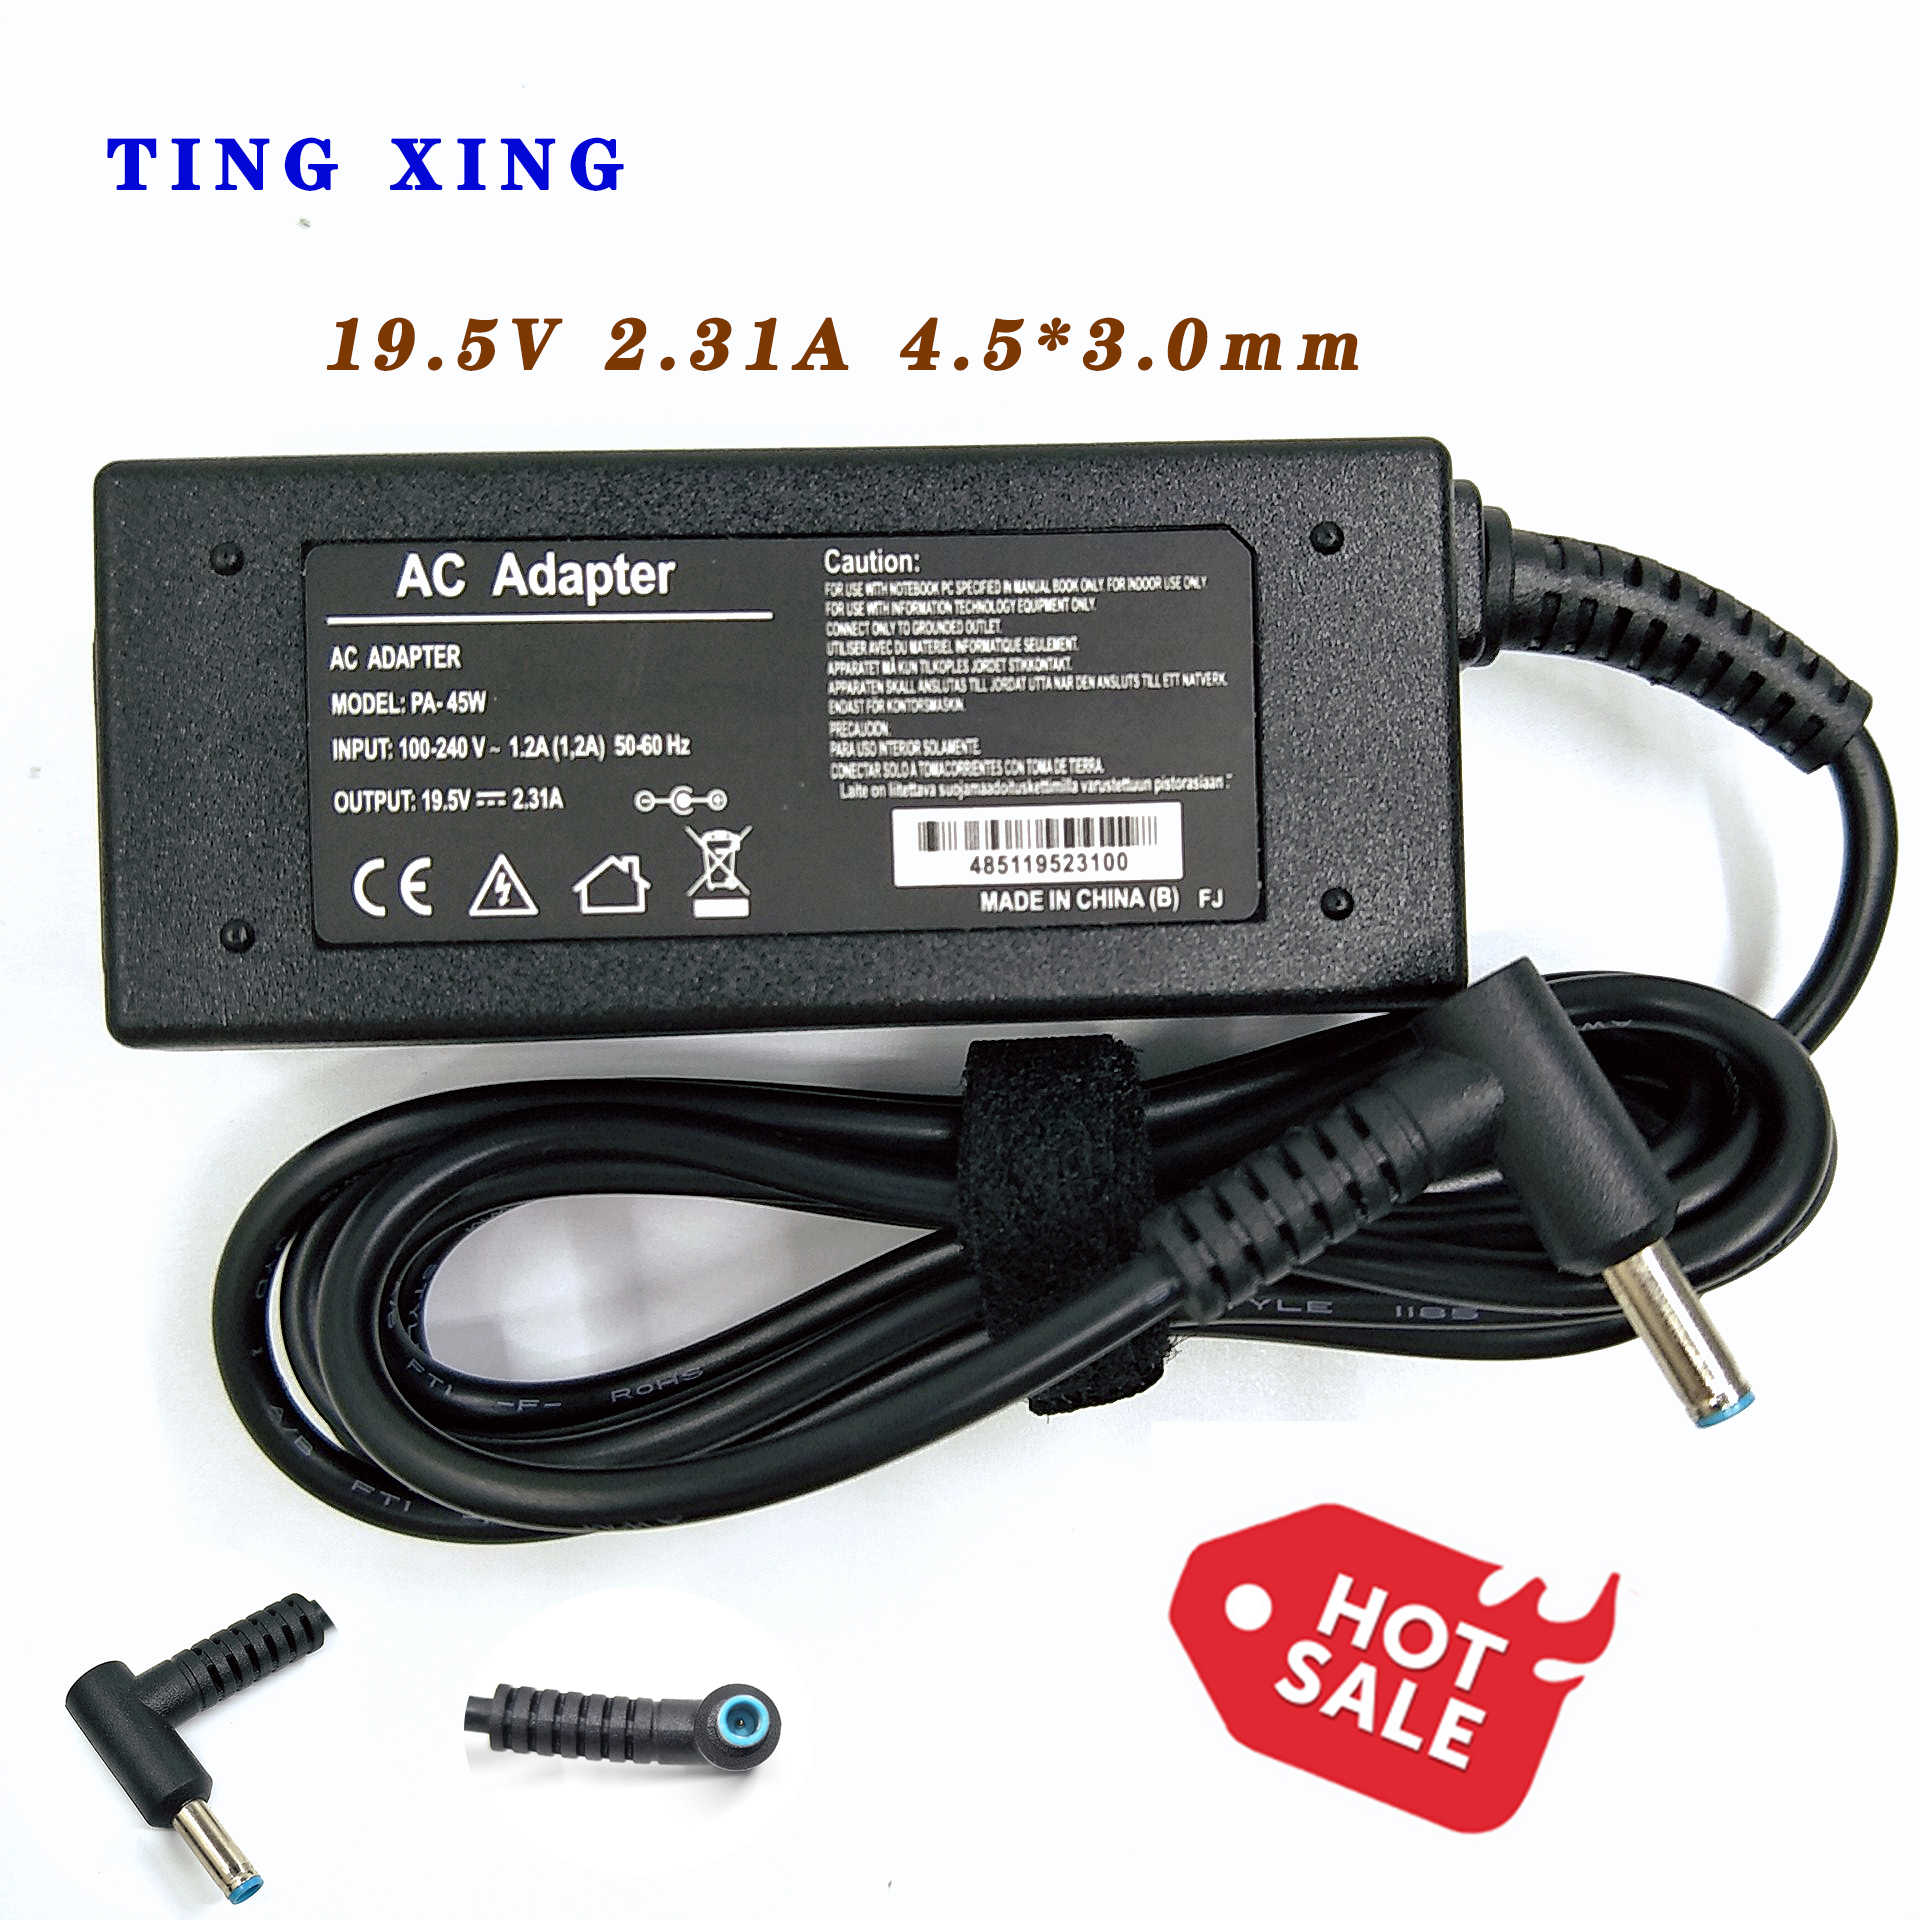 TINGXING19.5V2.31A 45W 4.5*3.0 milímetros Adaptador AC laptop Charger Power Supply Para ProBook 400 430 440 450 455 470 G3